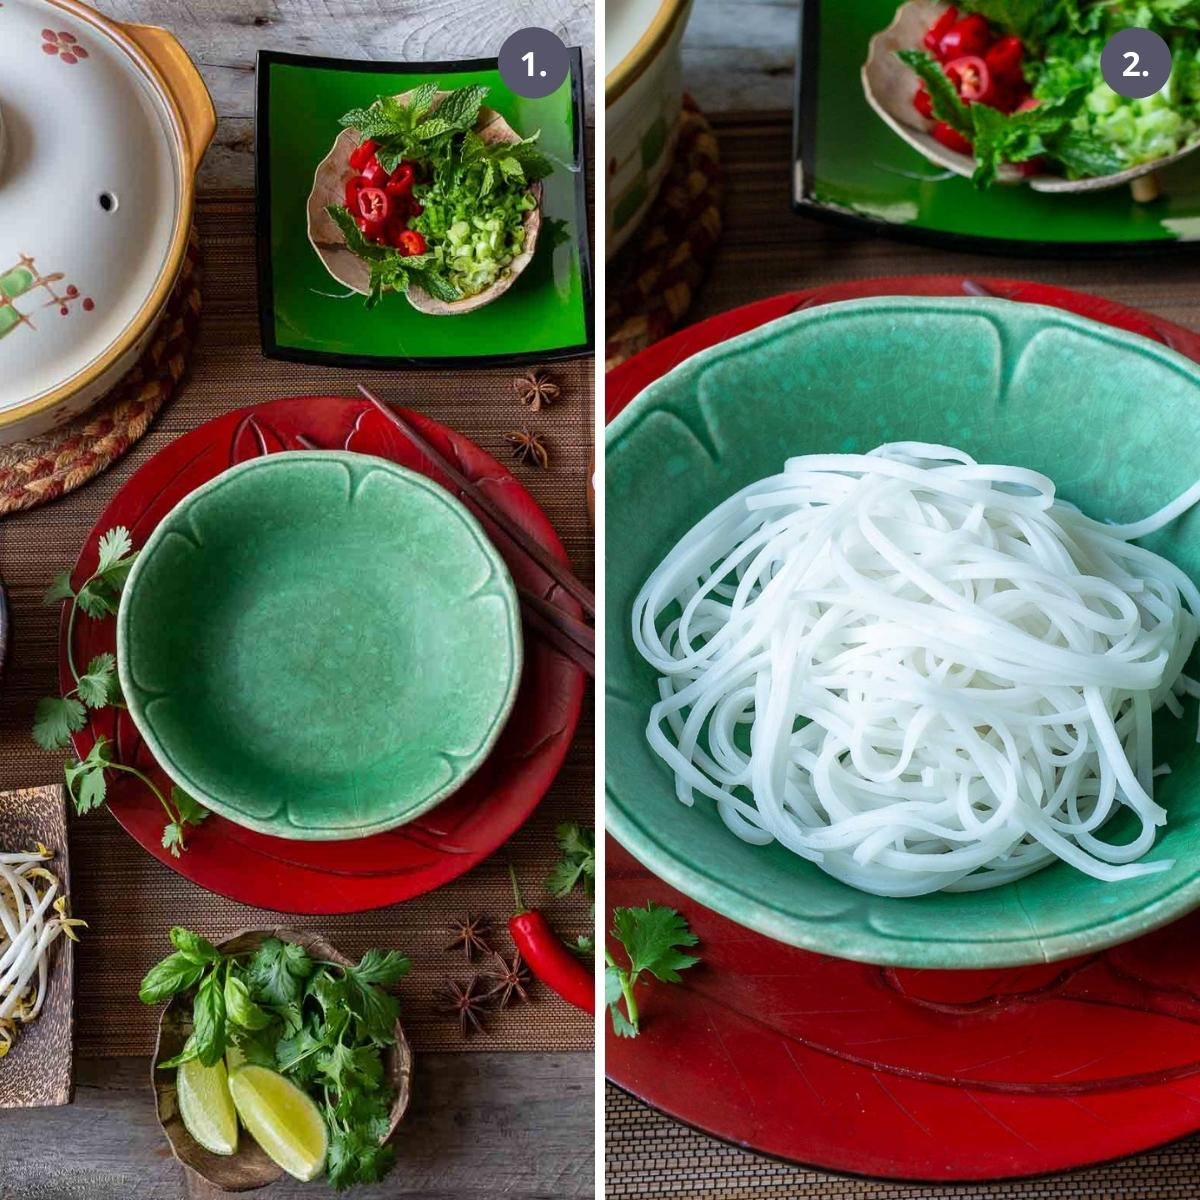 All pho bo ingredients to garnish around a bowl of cooked rice noodles.